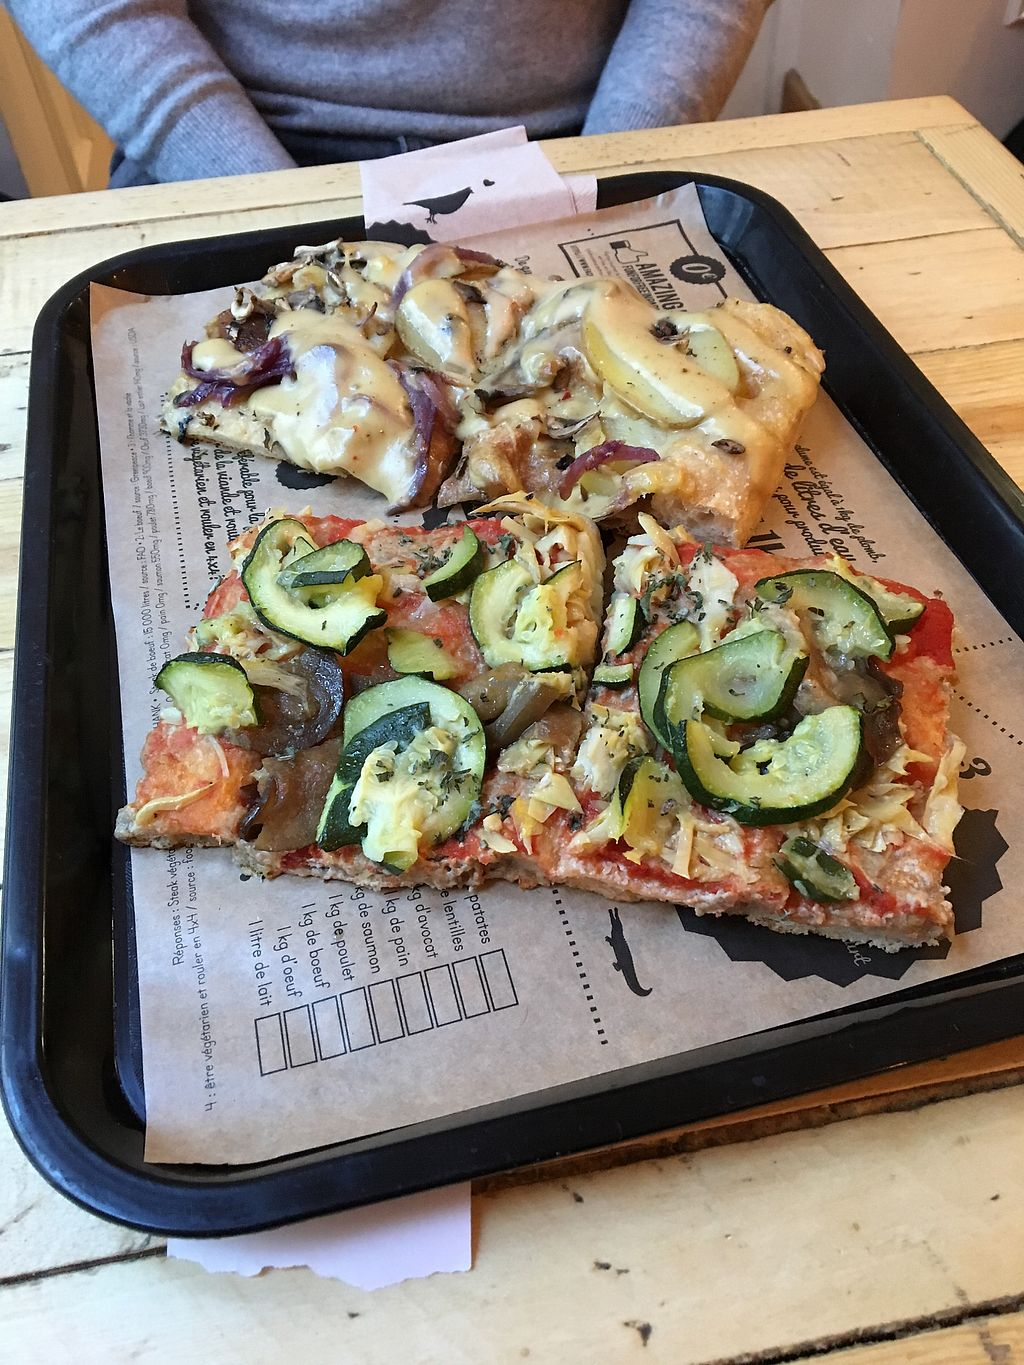 """Photo of Hank Vegan Pizza  by <a href=""""/members/profile/RebeccaFrances"""">RebeccaFrances</a> <br/>Great pizza! <br/> February 18, 2018  - <a href='/contact/abuse/image/79001/360736'>Report</a>"""